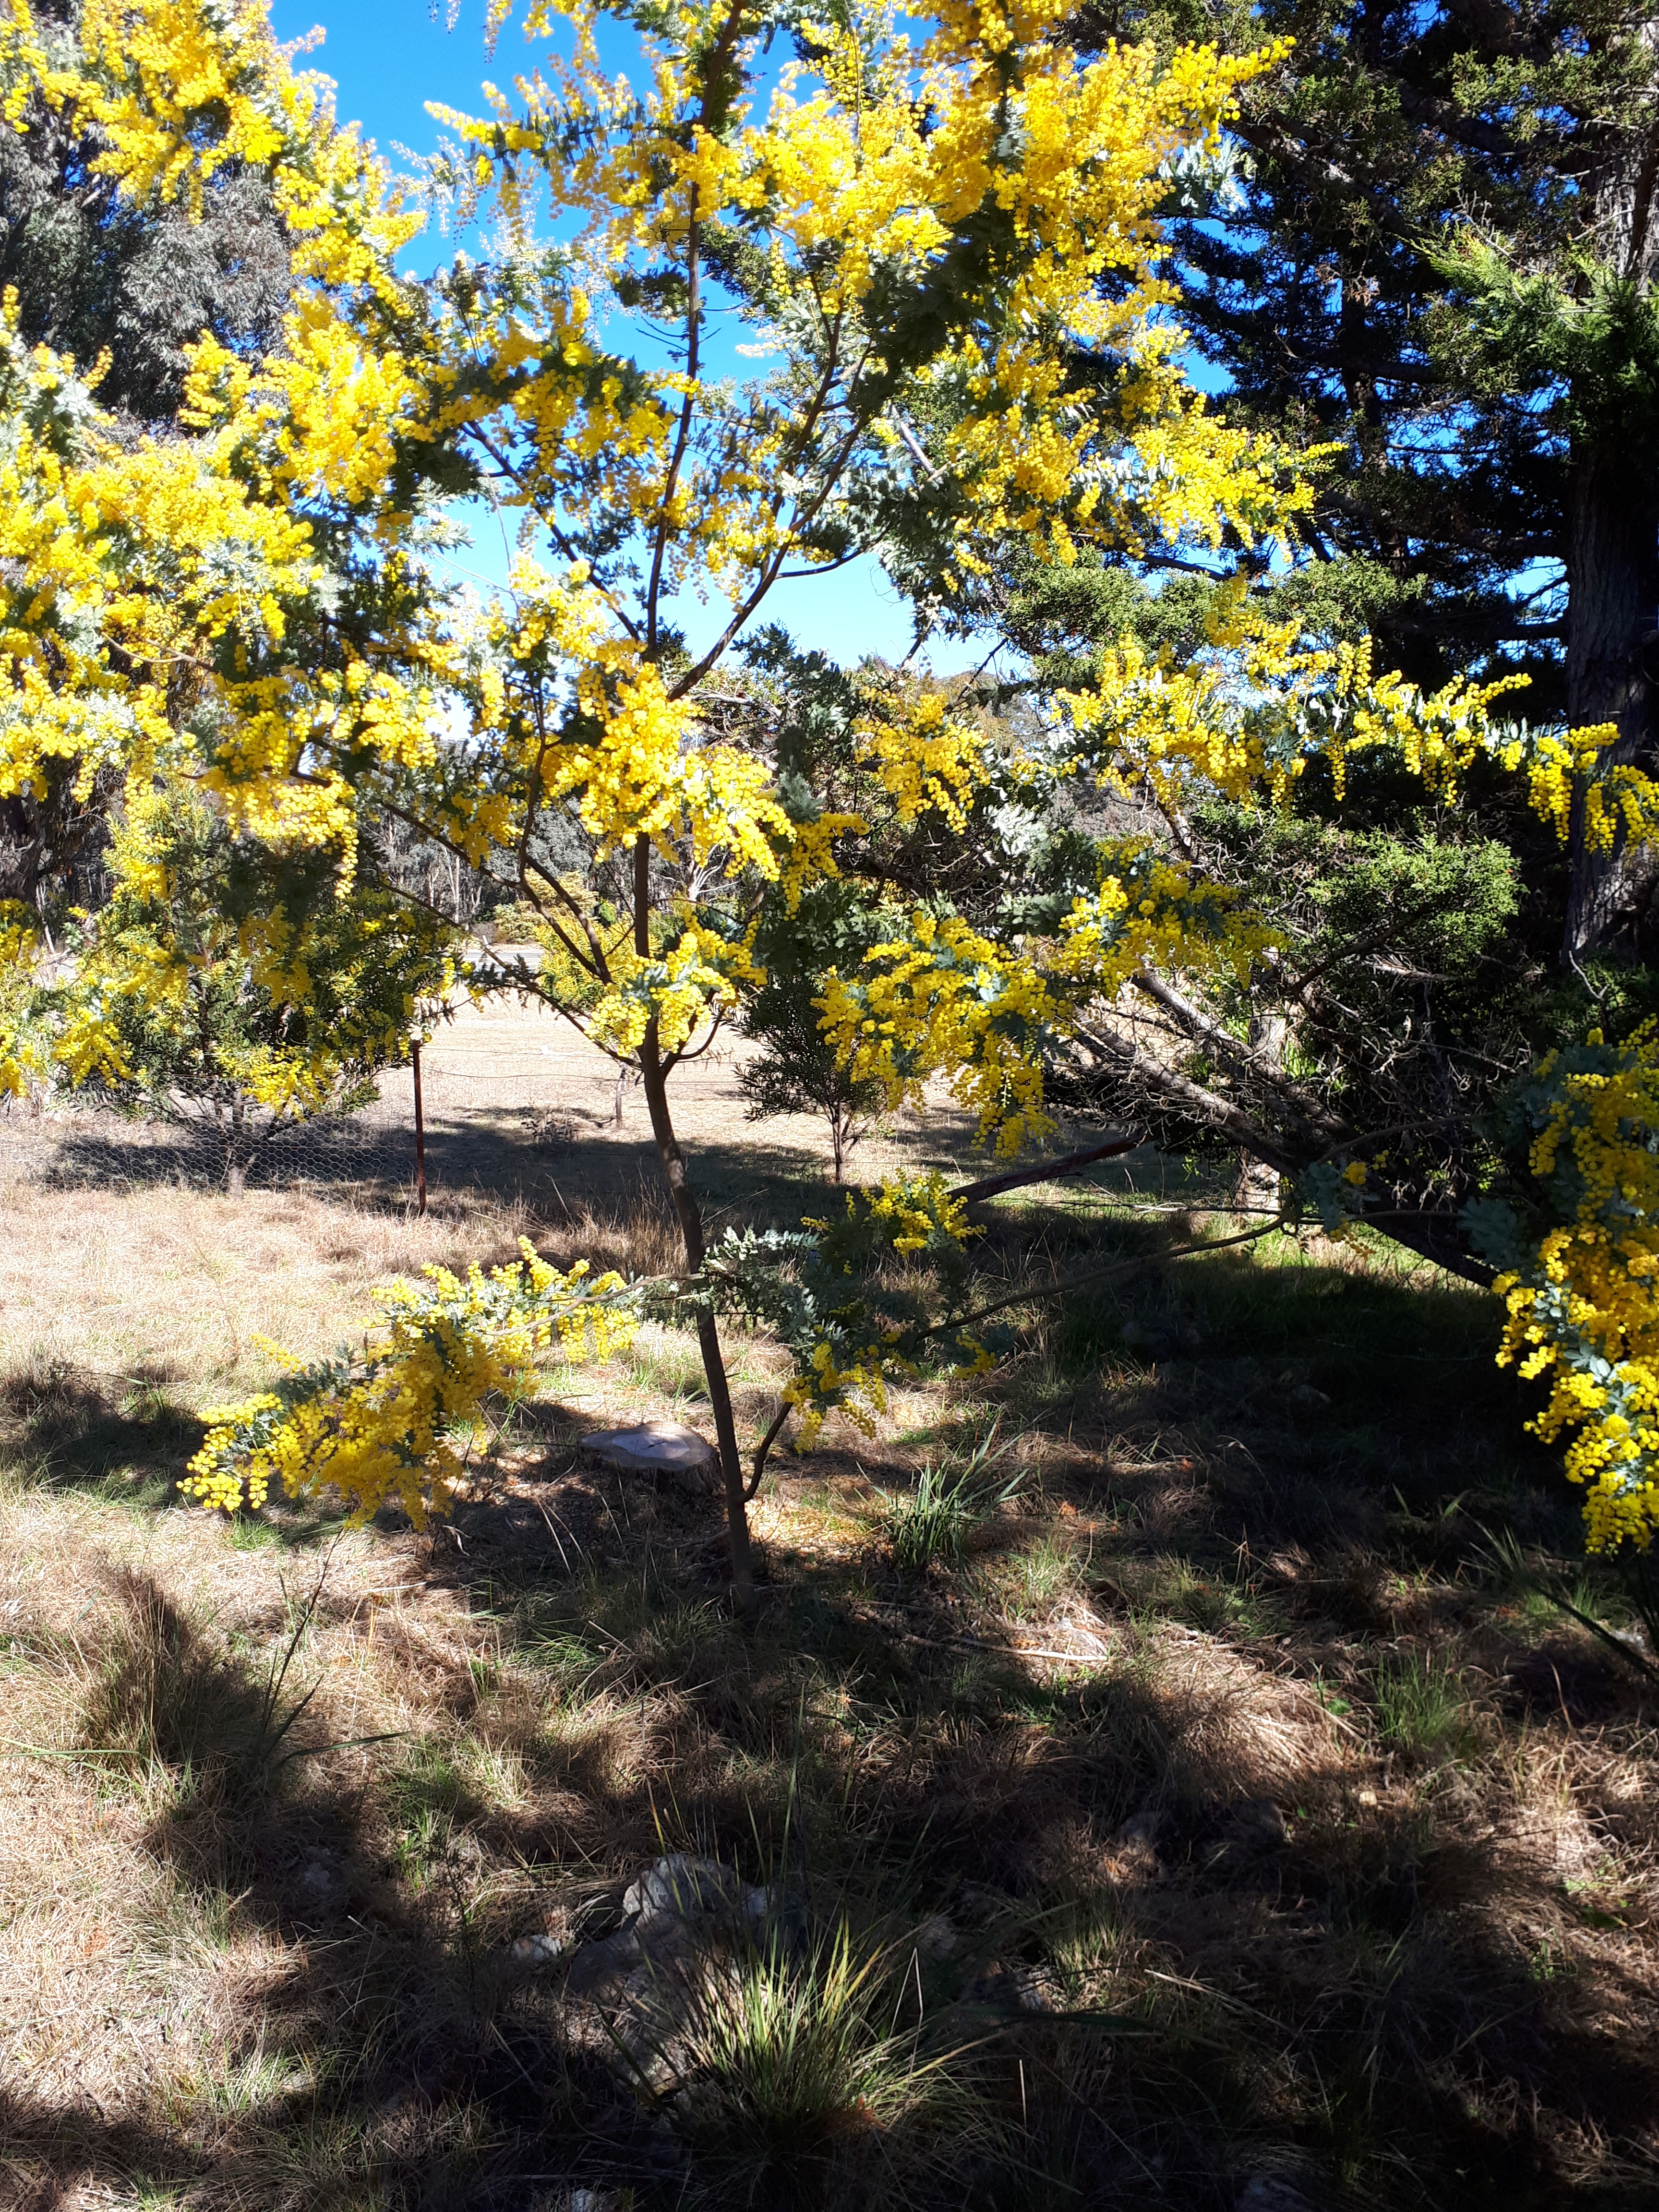 A Poem To Celebrate An Exceptional Wattle Season Feathers Of The